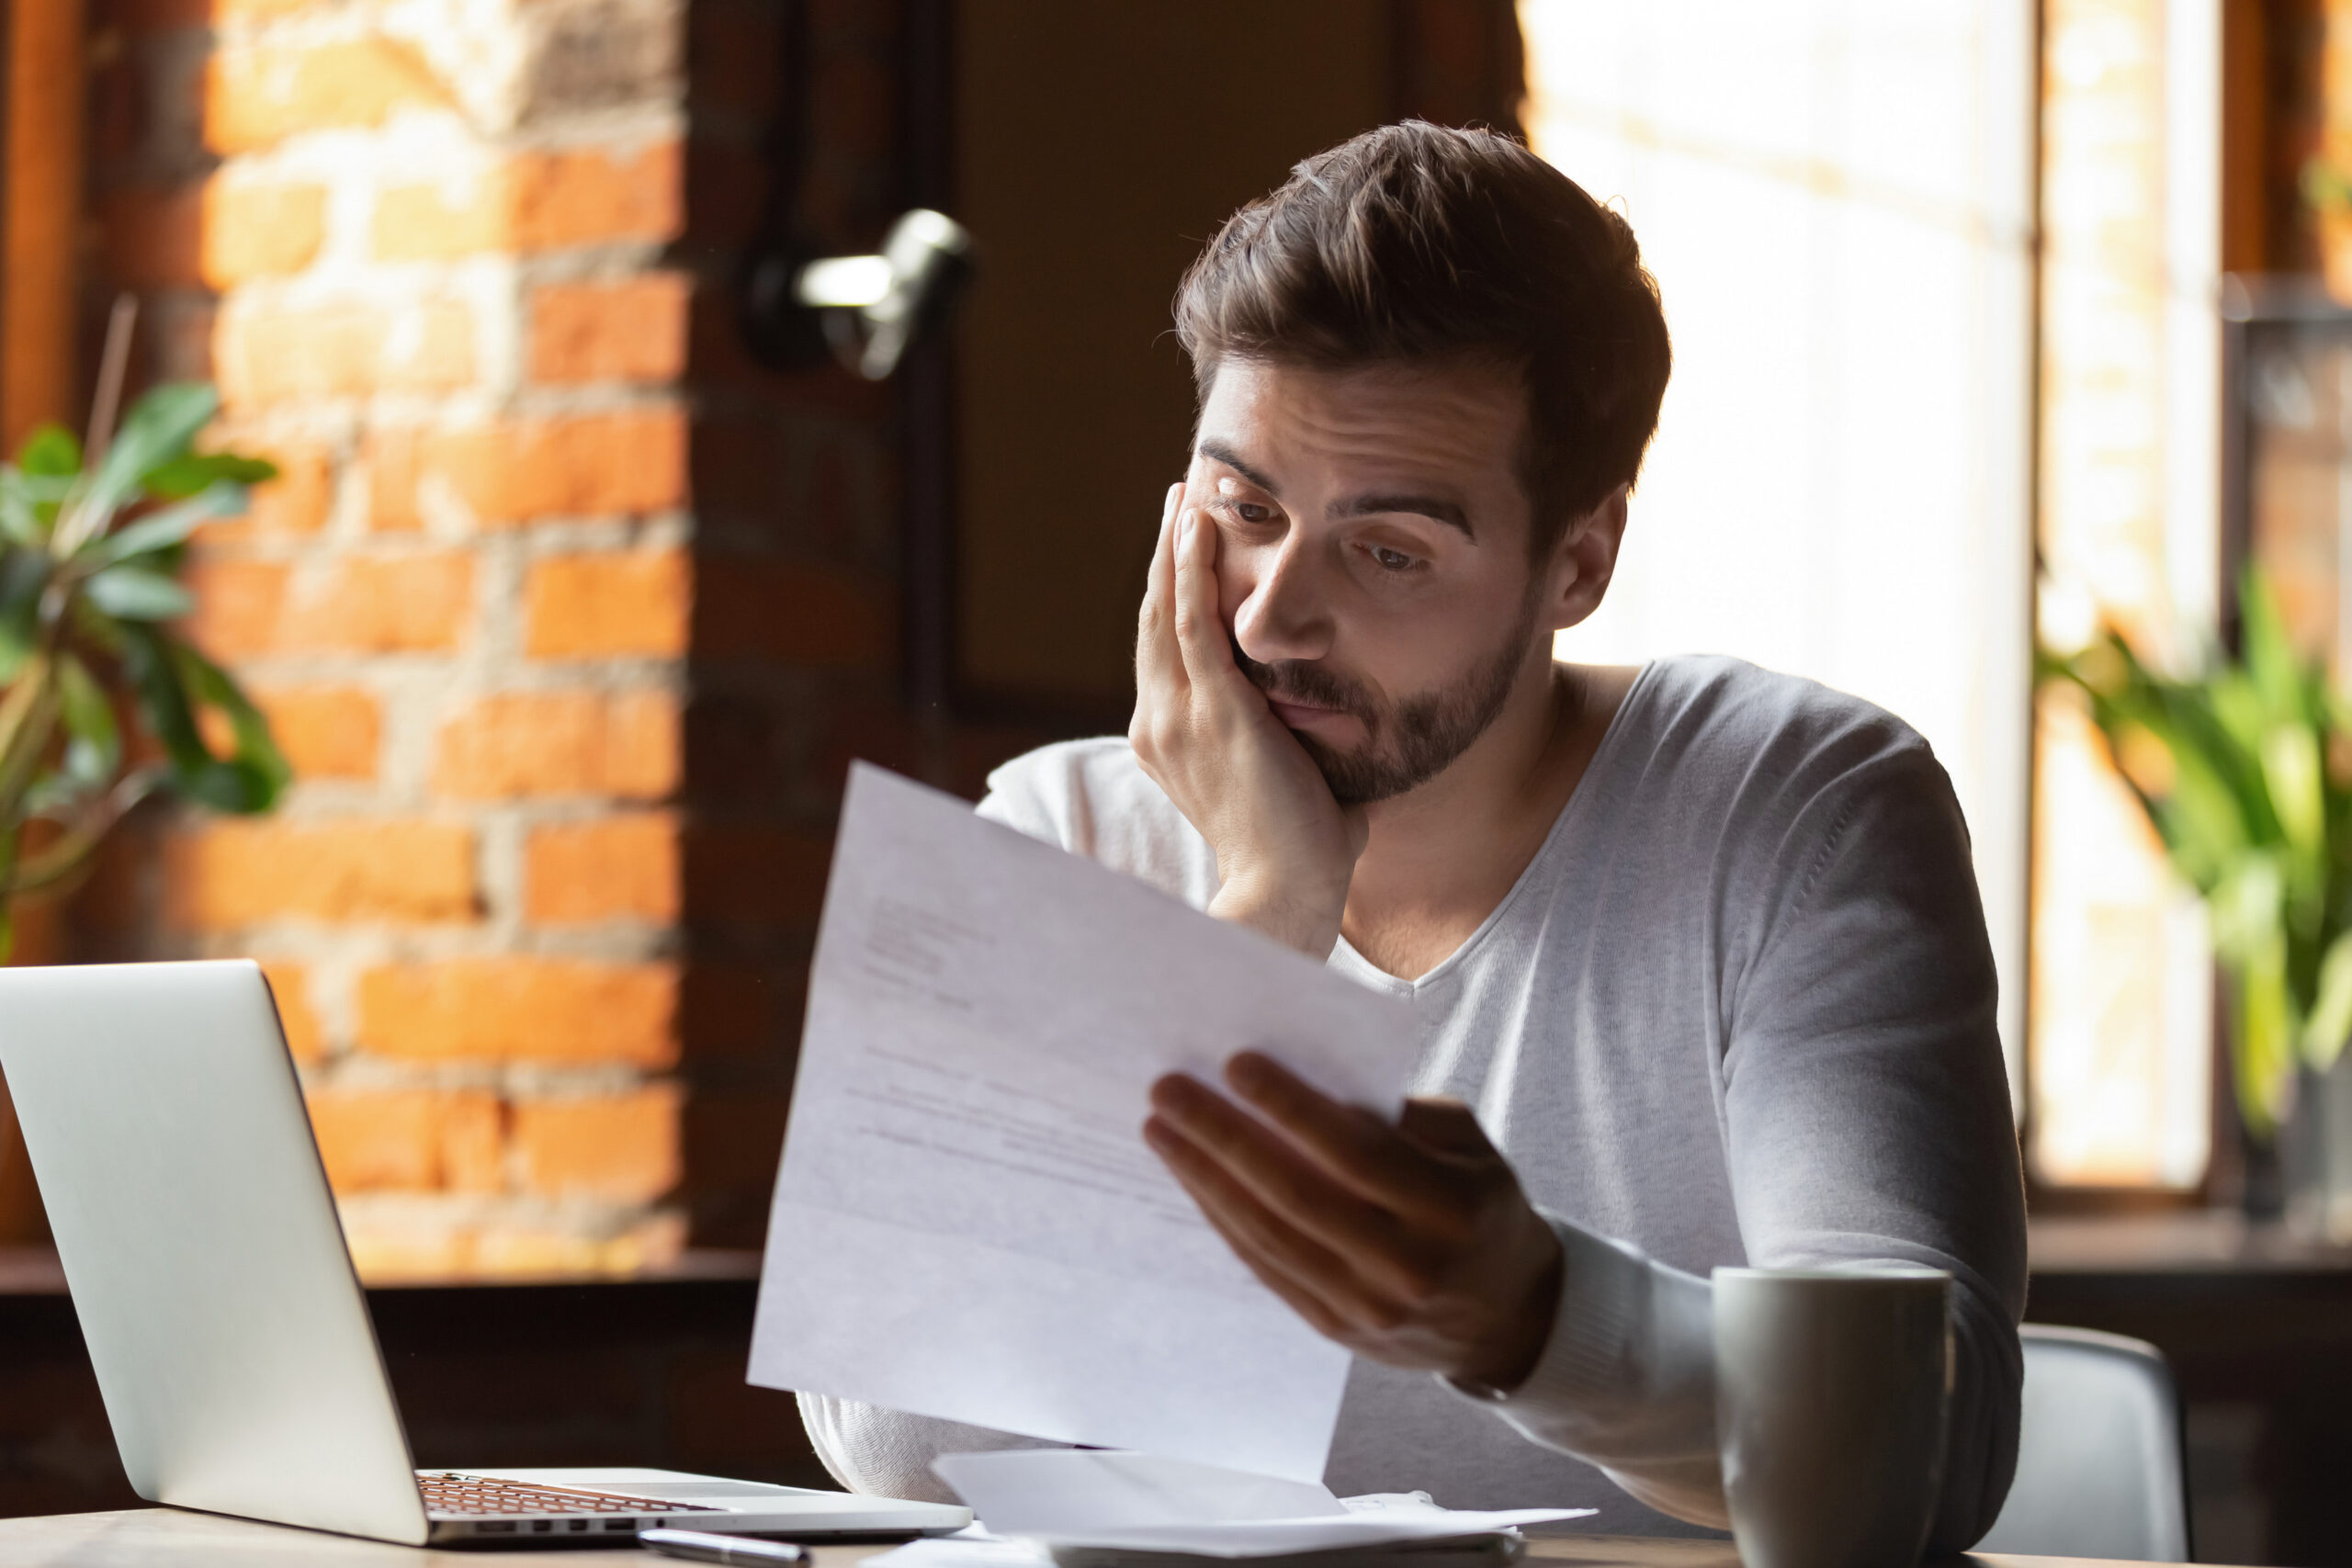 Man looks at Student Loan Notice